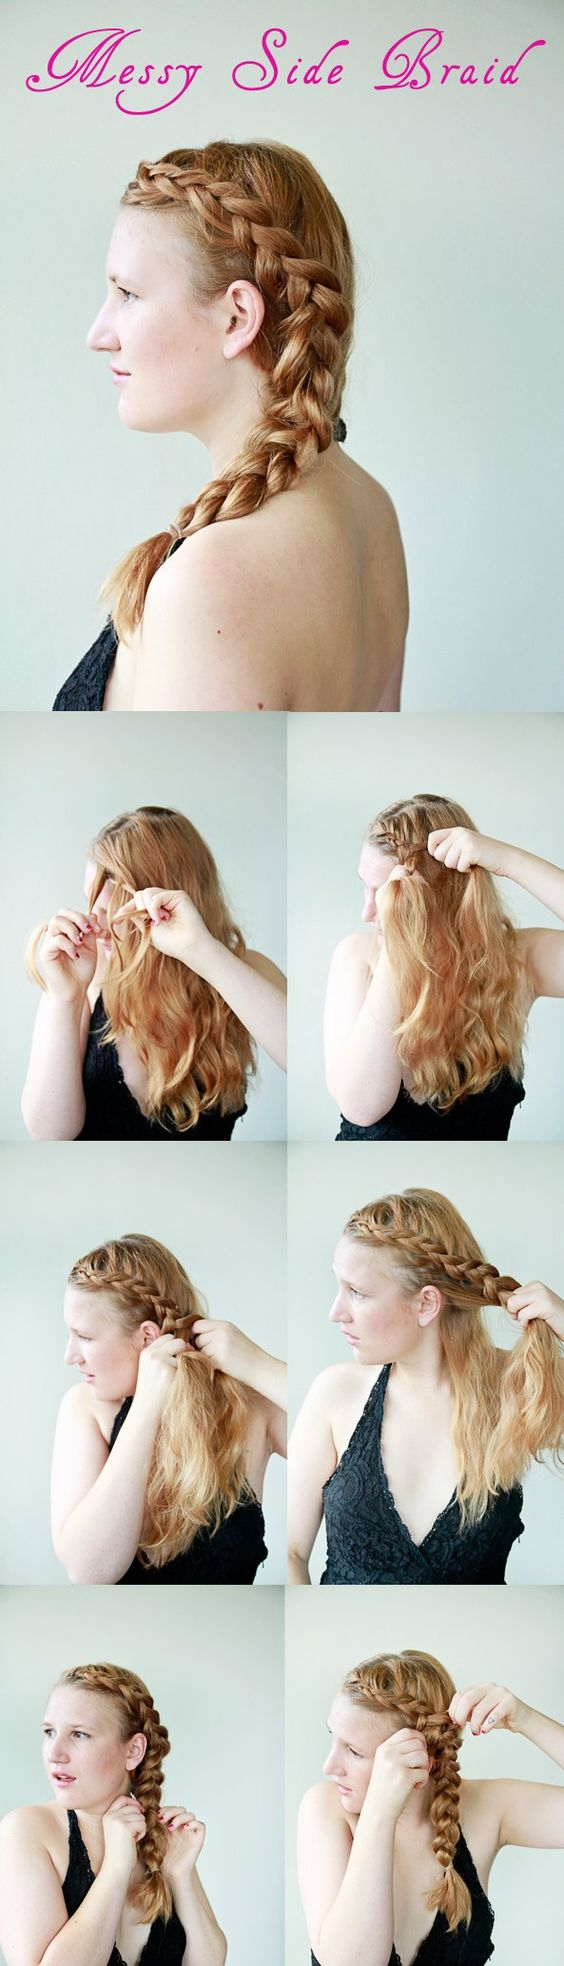 how to do a messy braid - a really easy braid that's great for both work and events. try it now!